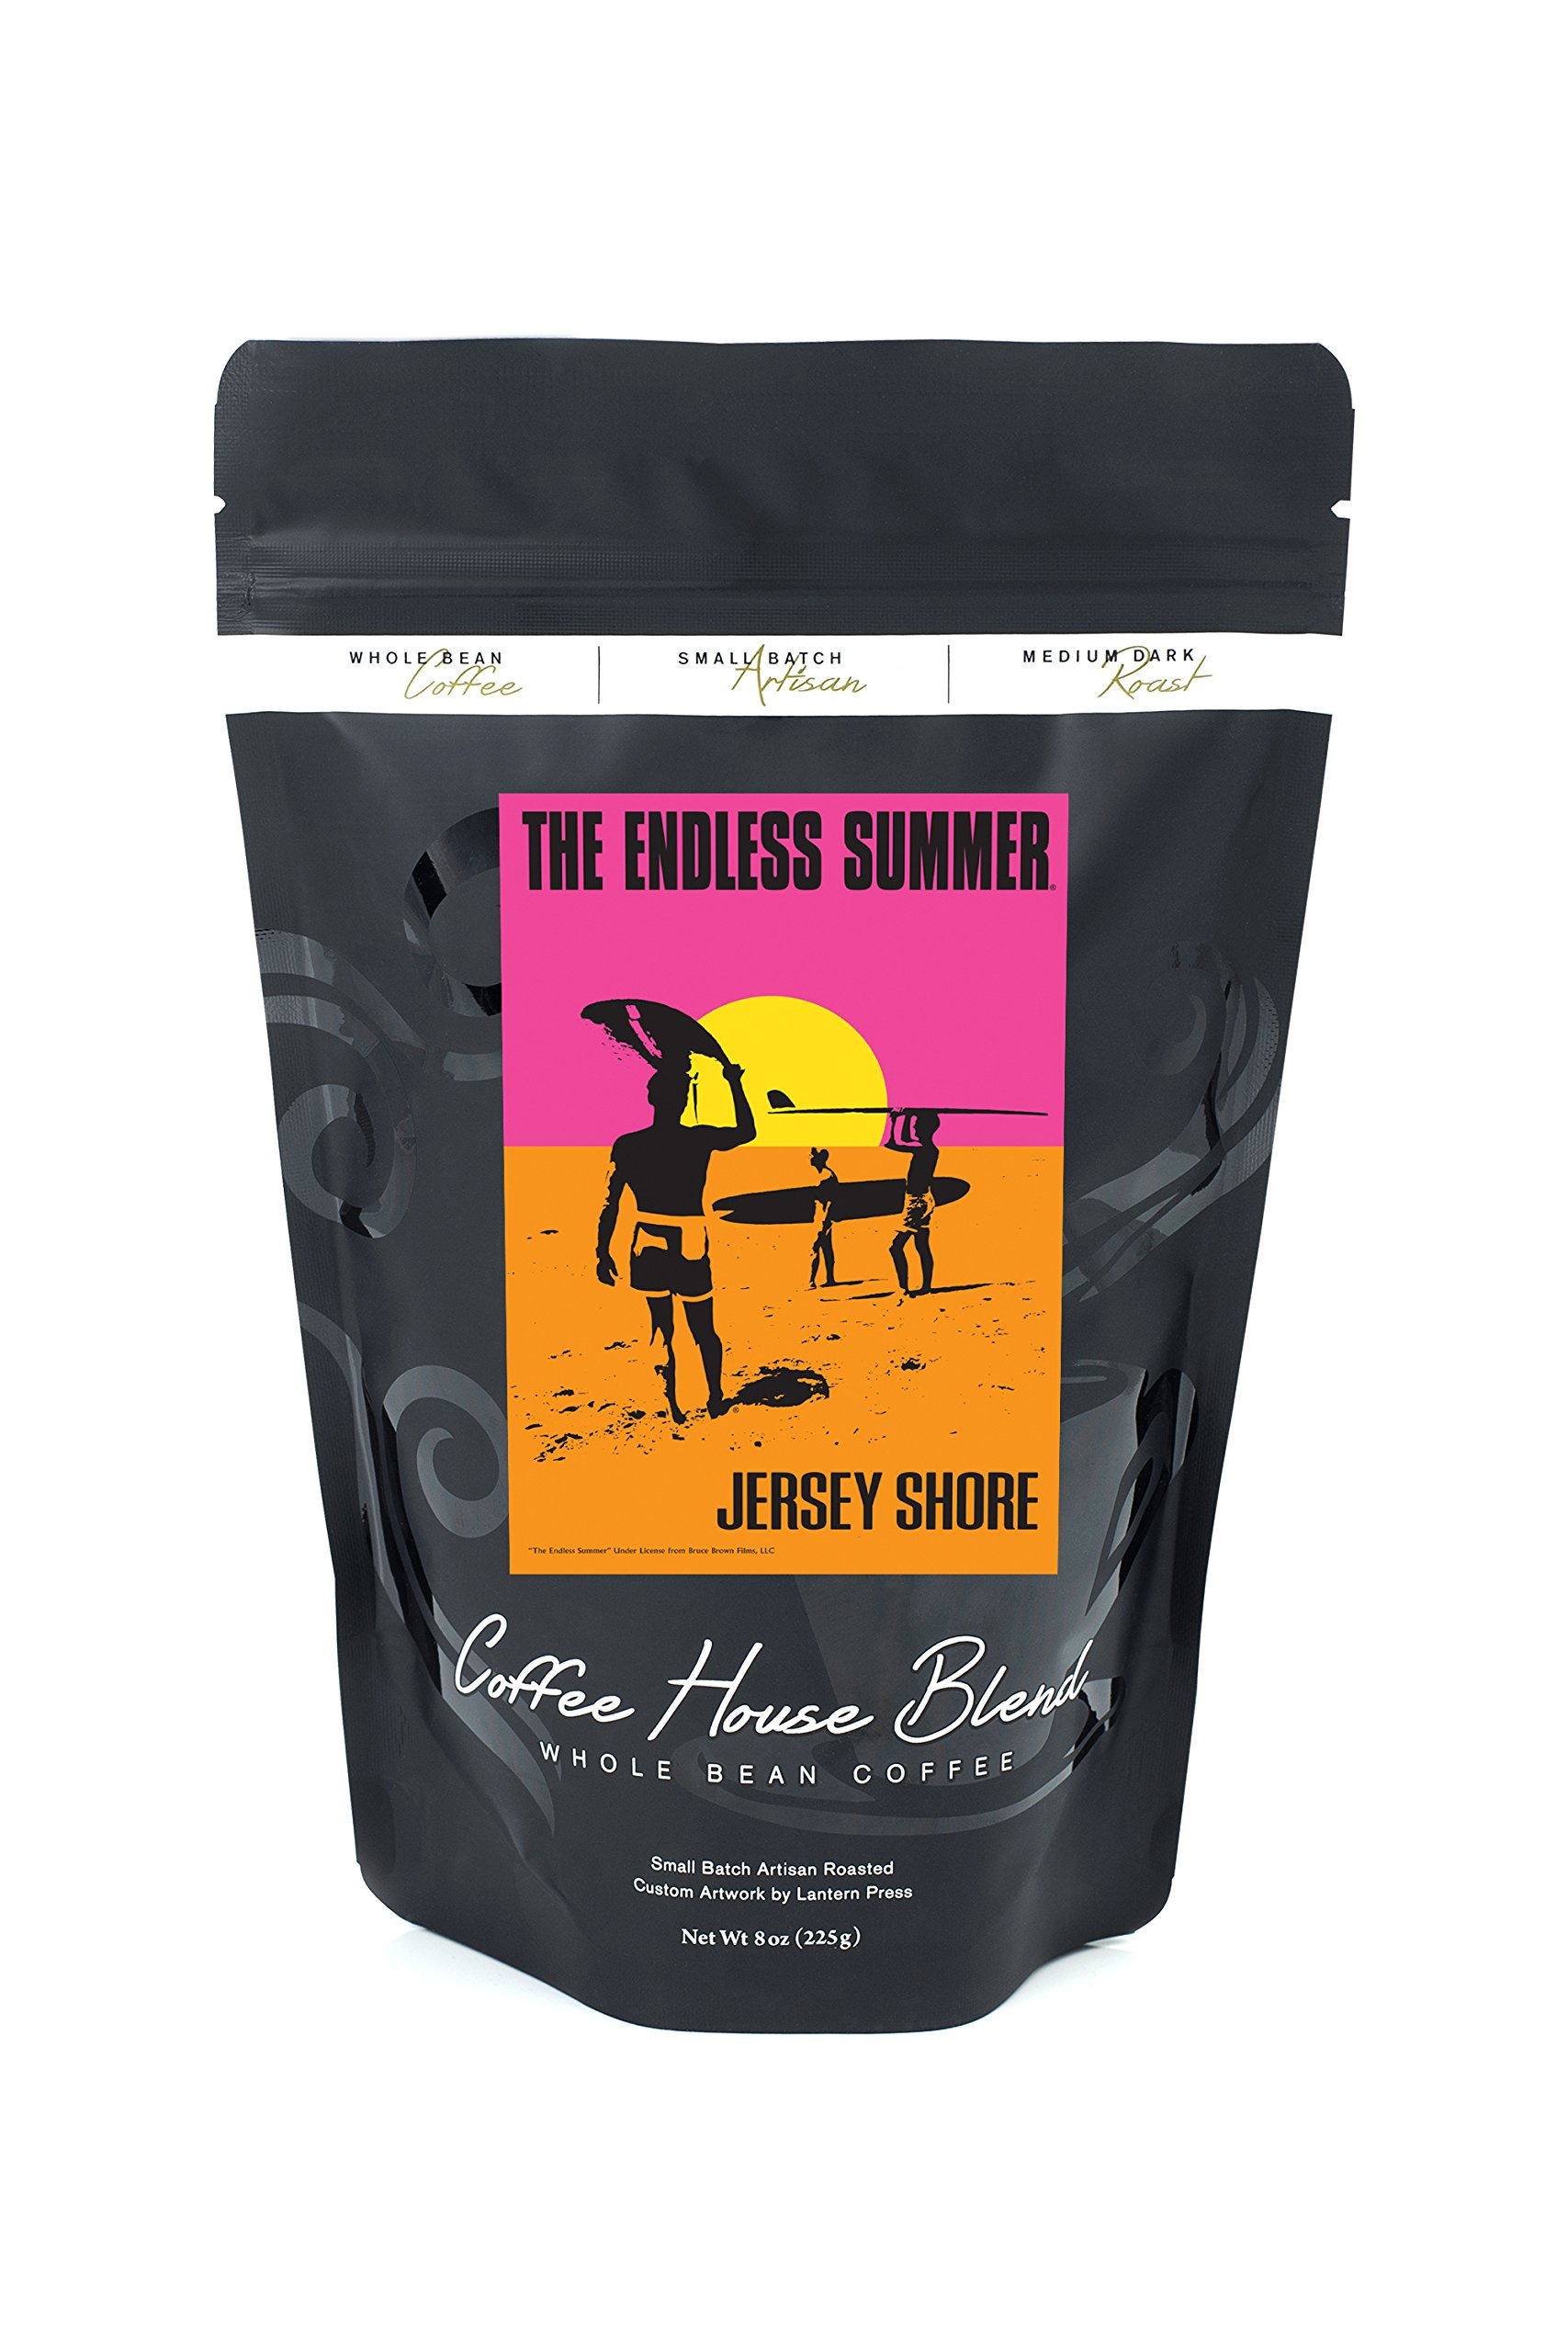 Jersey Shore - The Endless Summer - Original Movie Poster (8oz Whole Bean Small Batch Artisan Coffee - Bold & Strong Medium Dark Roast w/ Artwork)